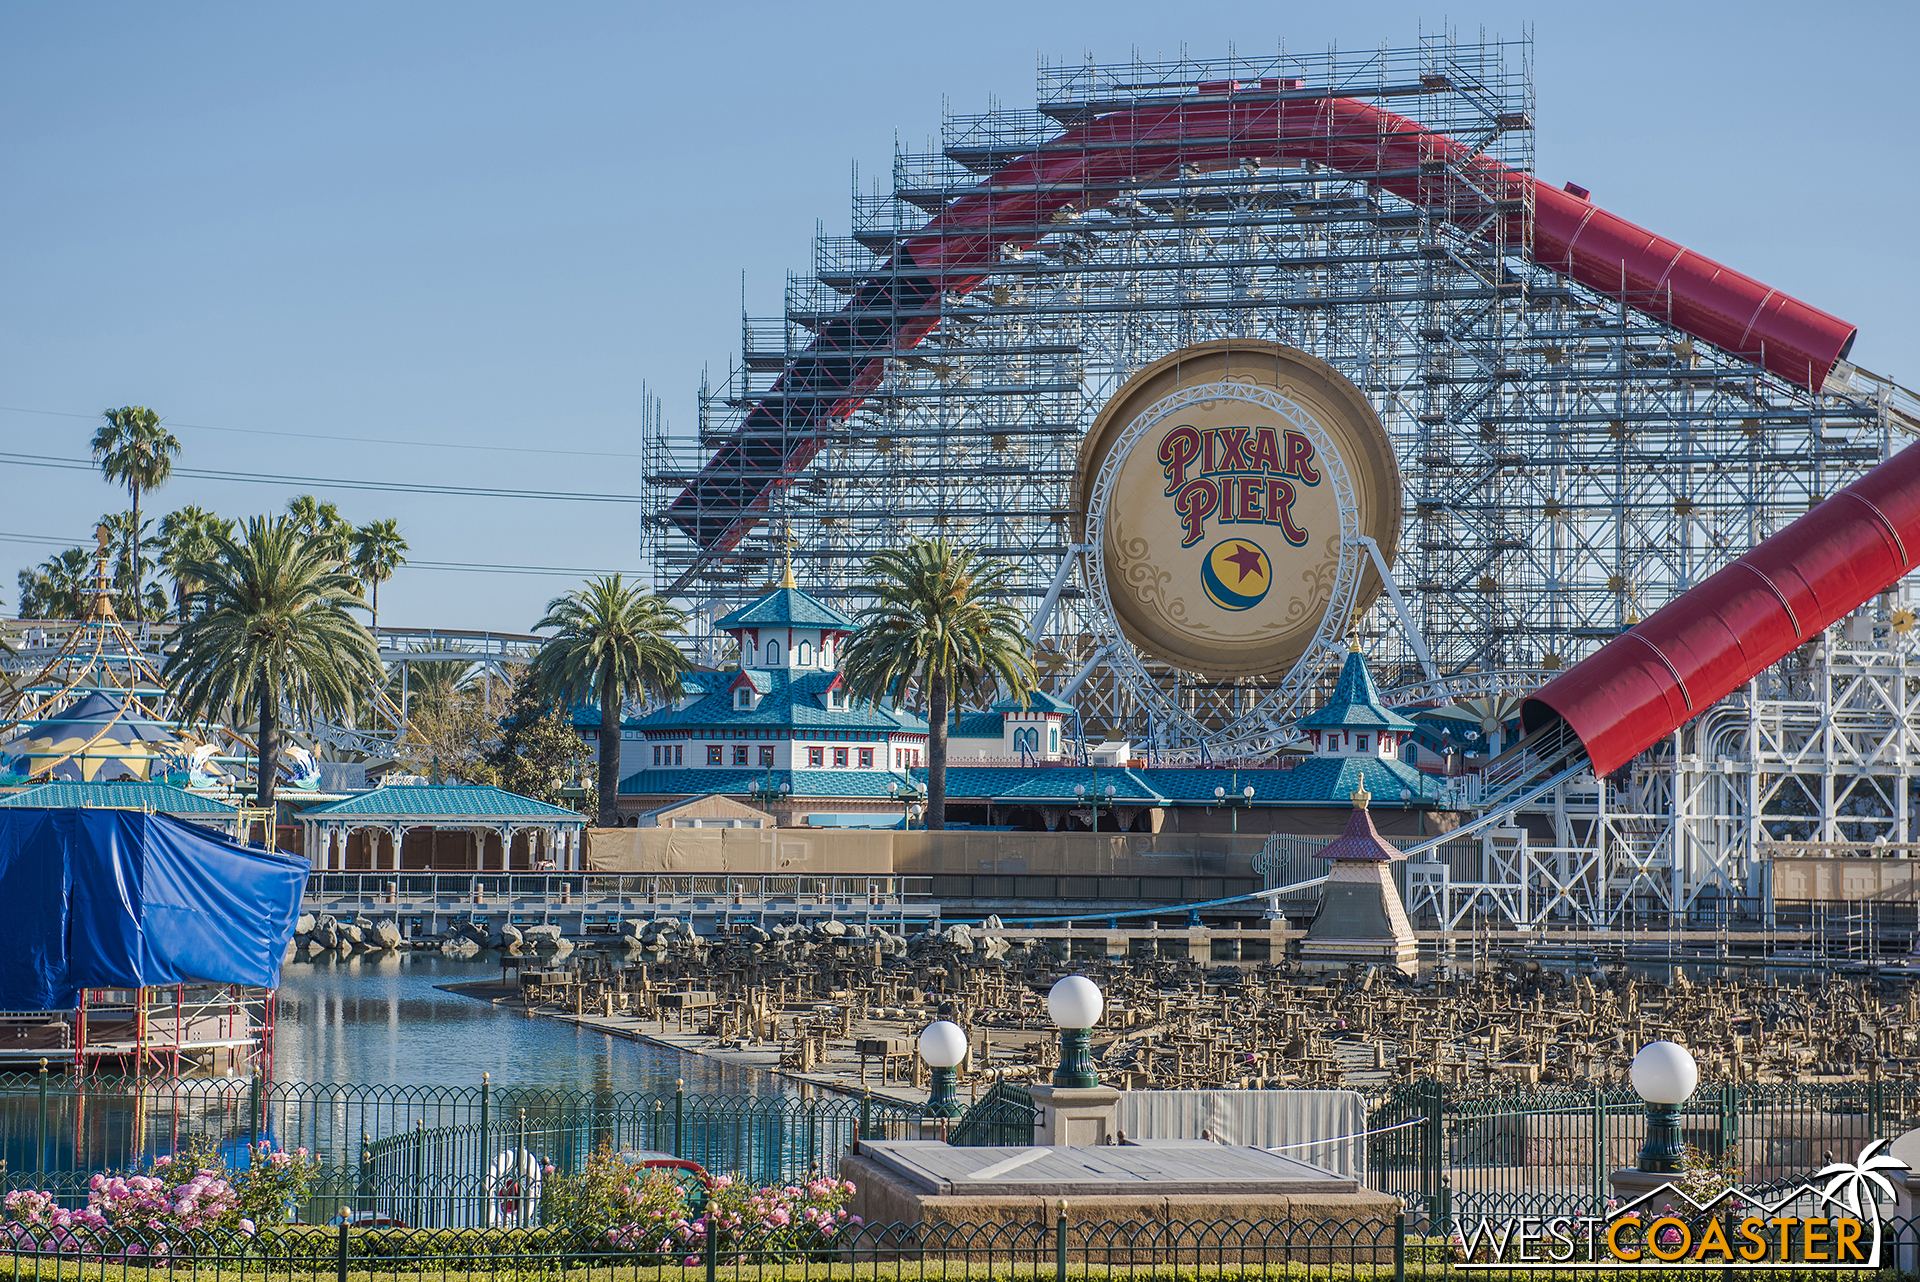 Check out the view across Paradise Bay.